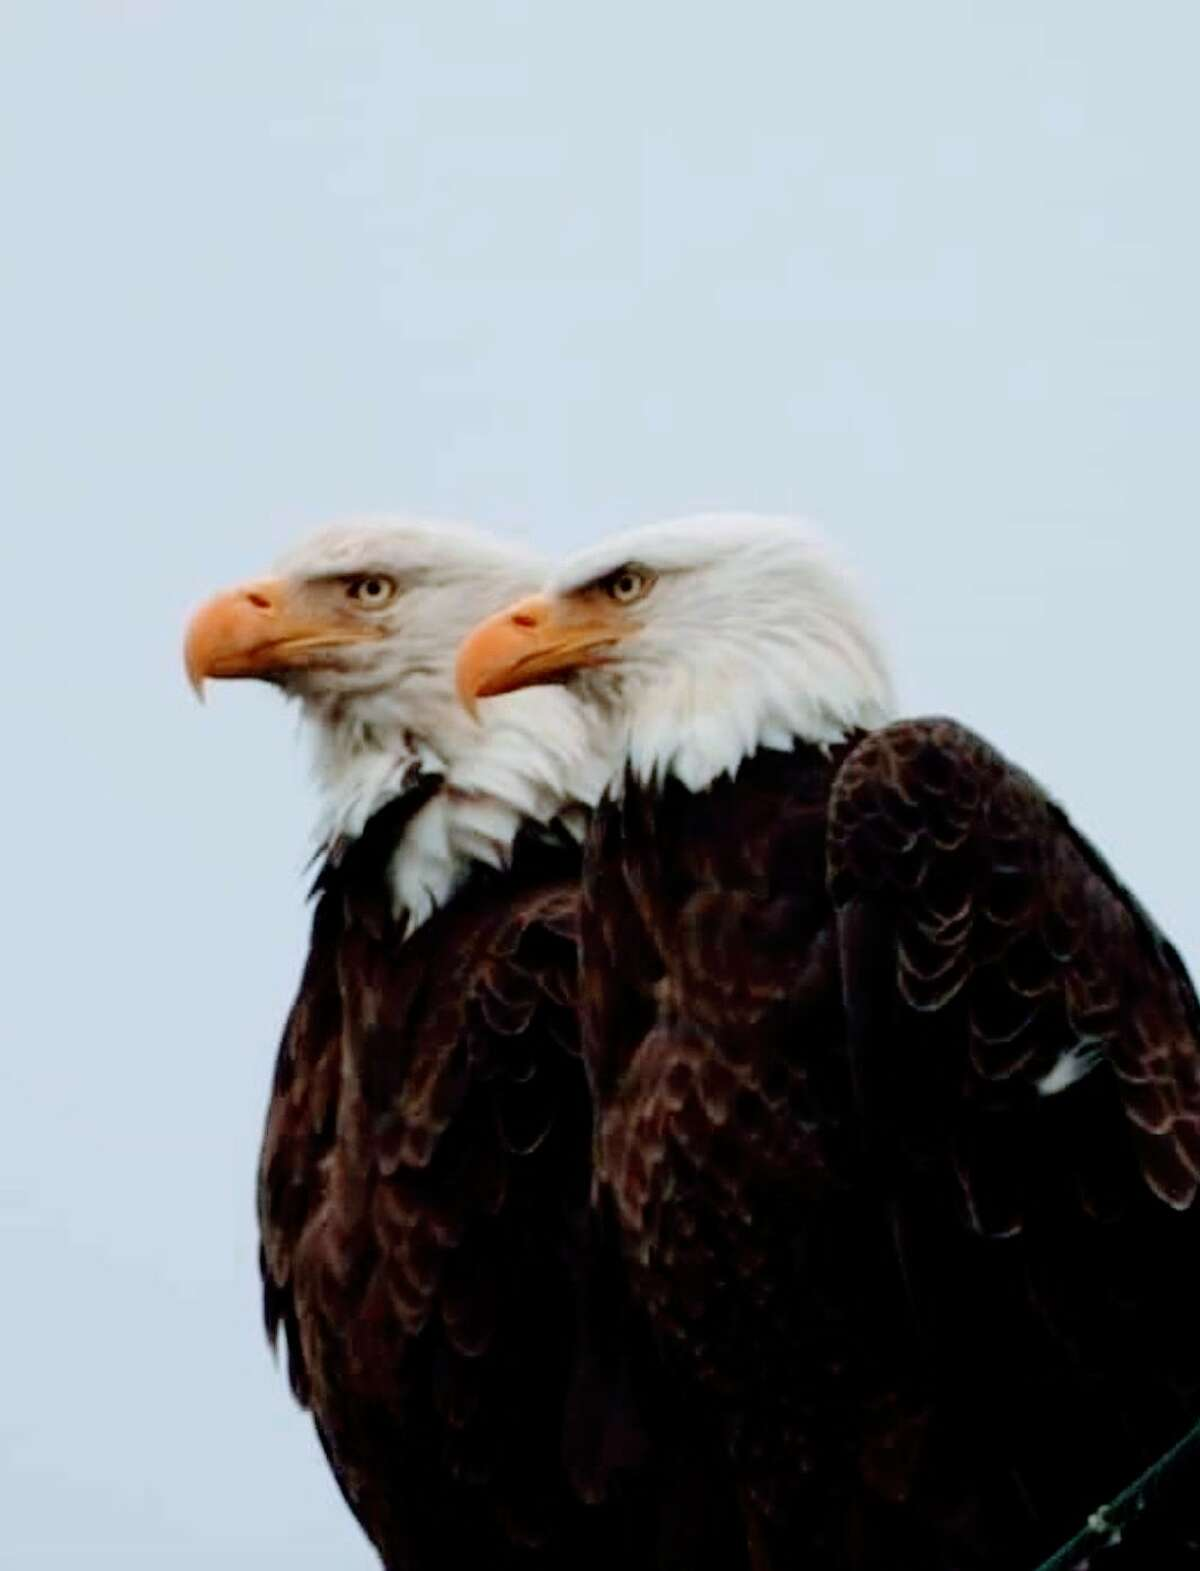 Beverly Miranda of Waterford found these eagles at Peebles Island, a photo taken on the tower near the Cohoes Waterford Bridge.